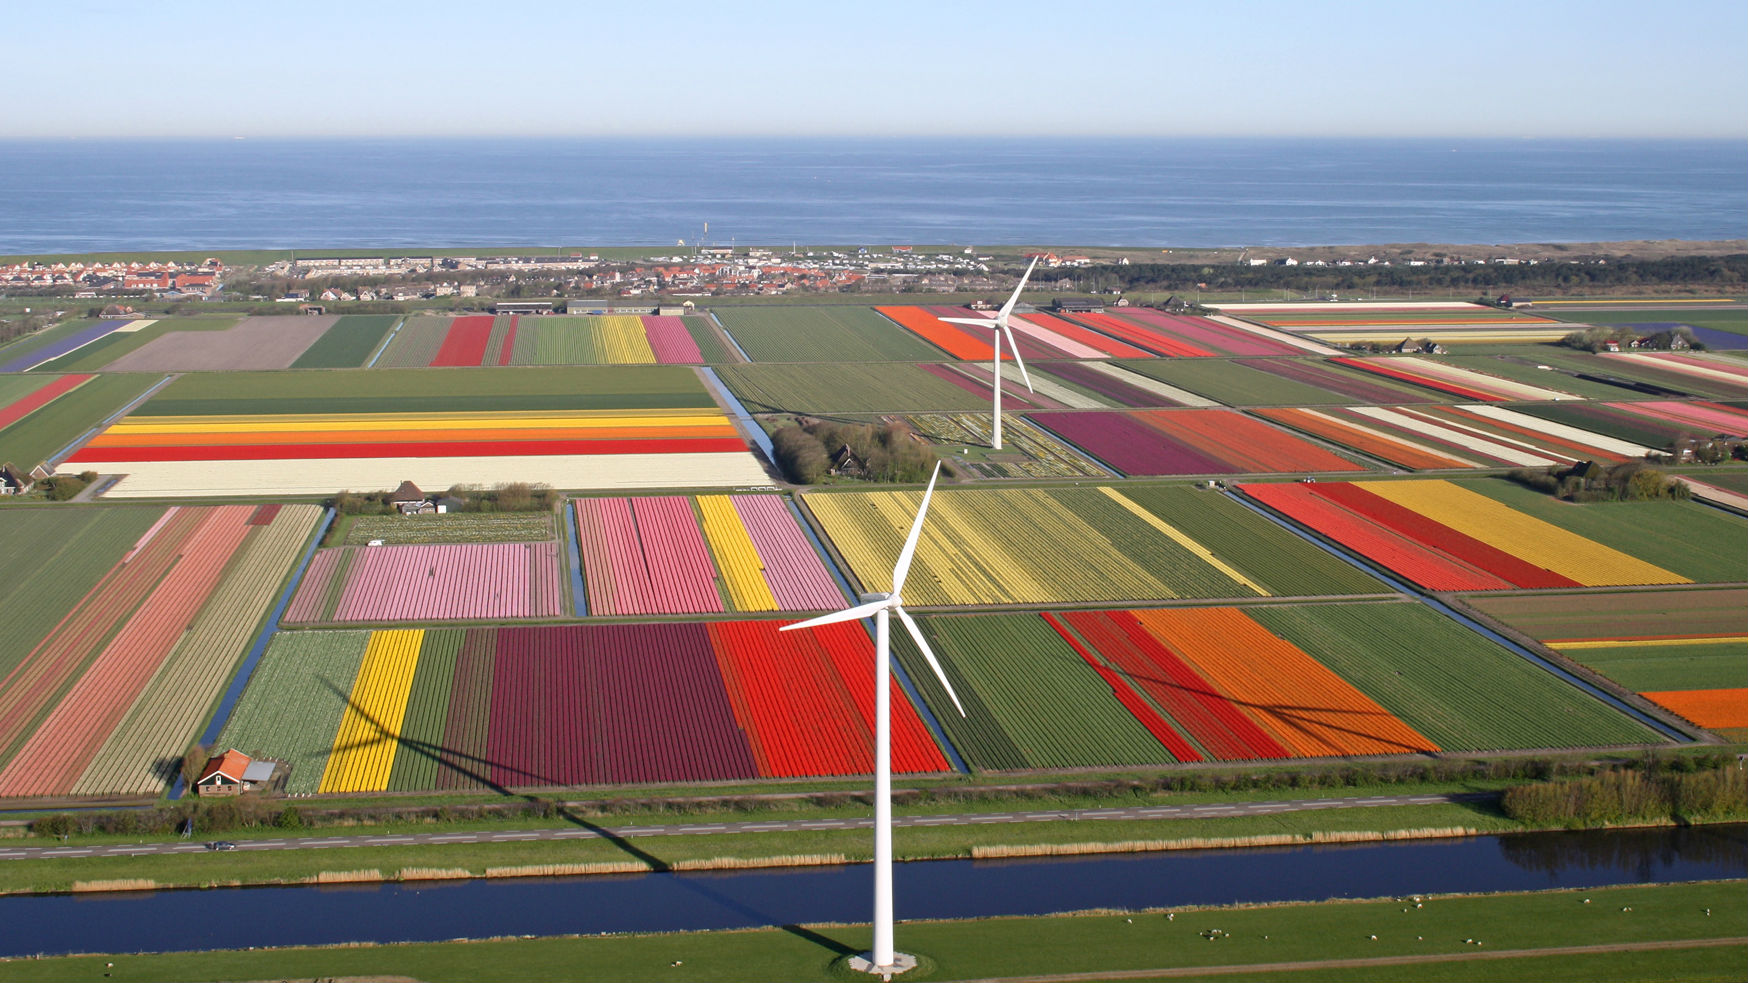 The largest tulipfields in the world